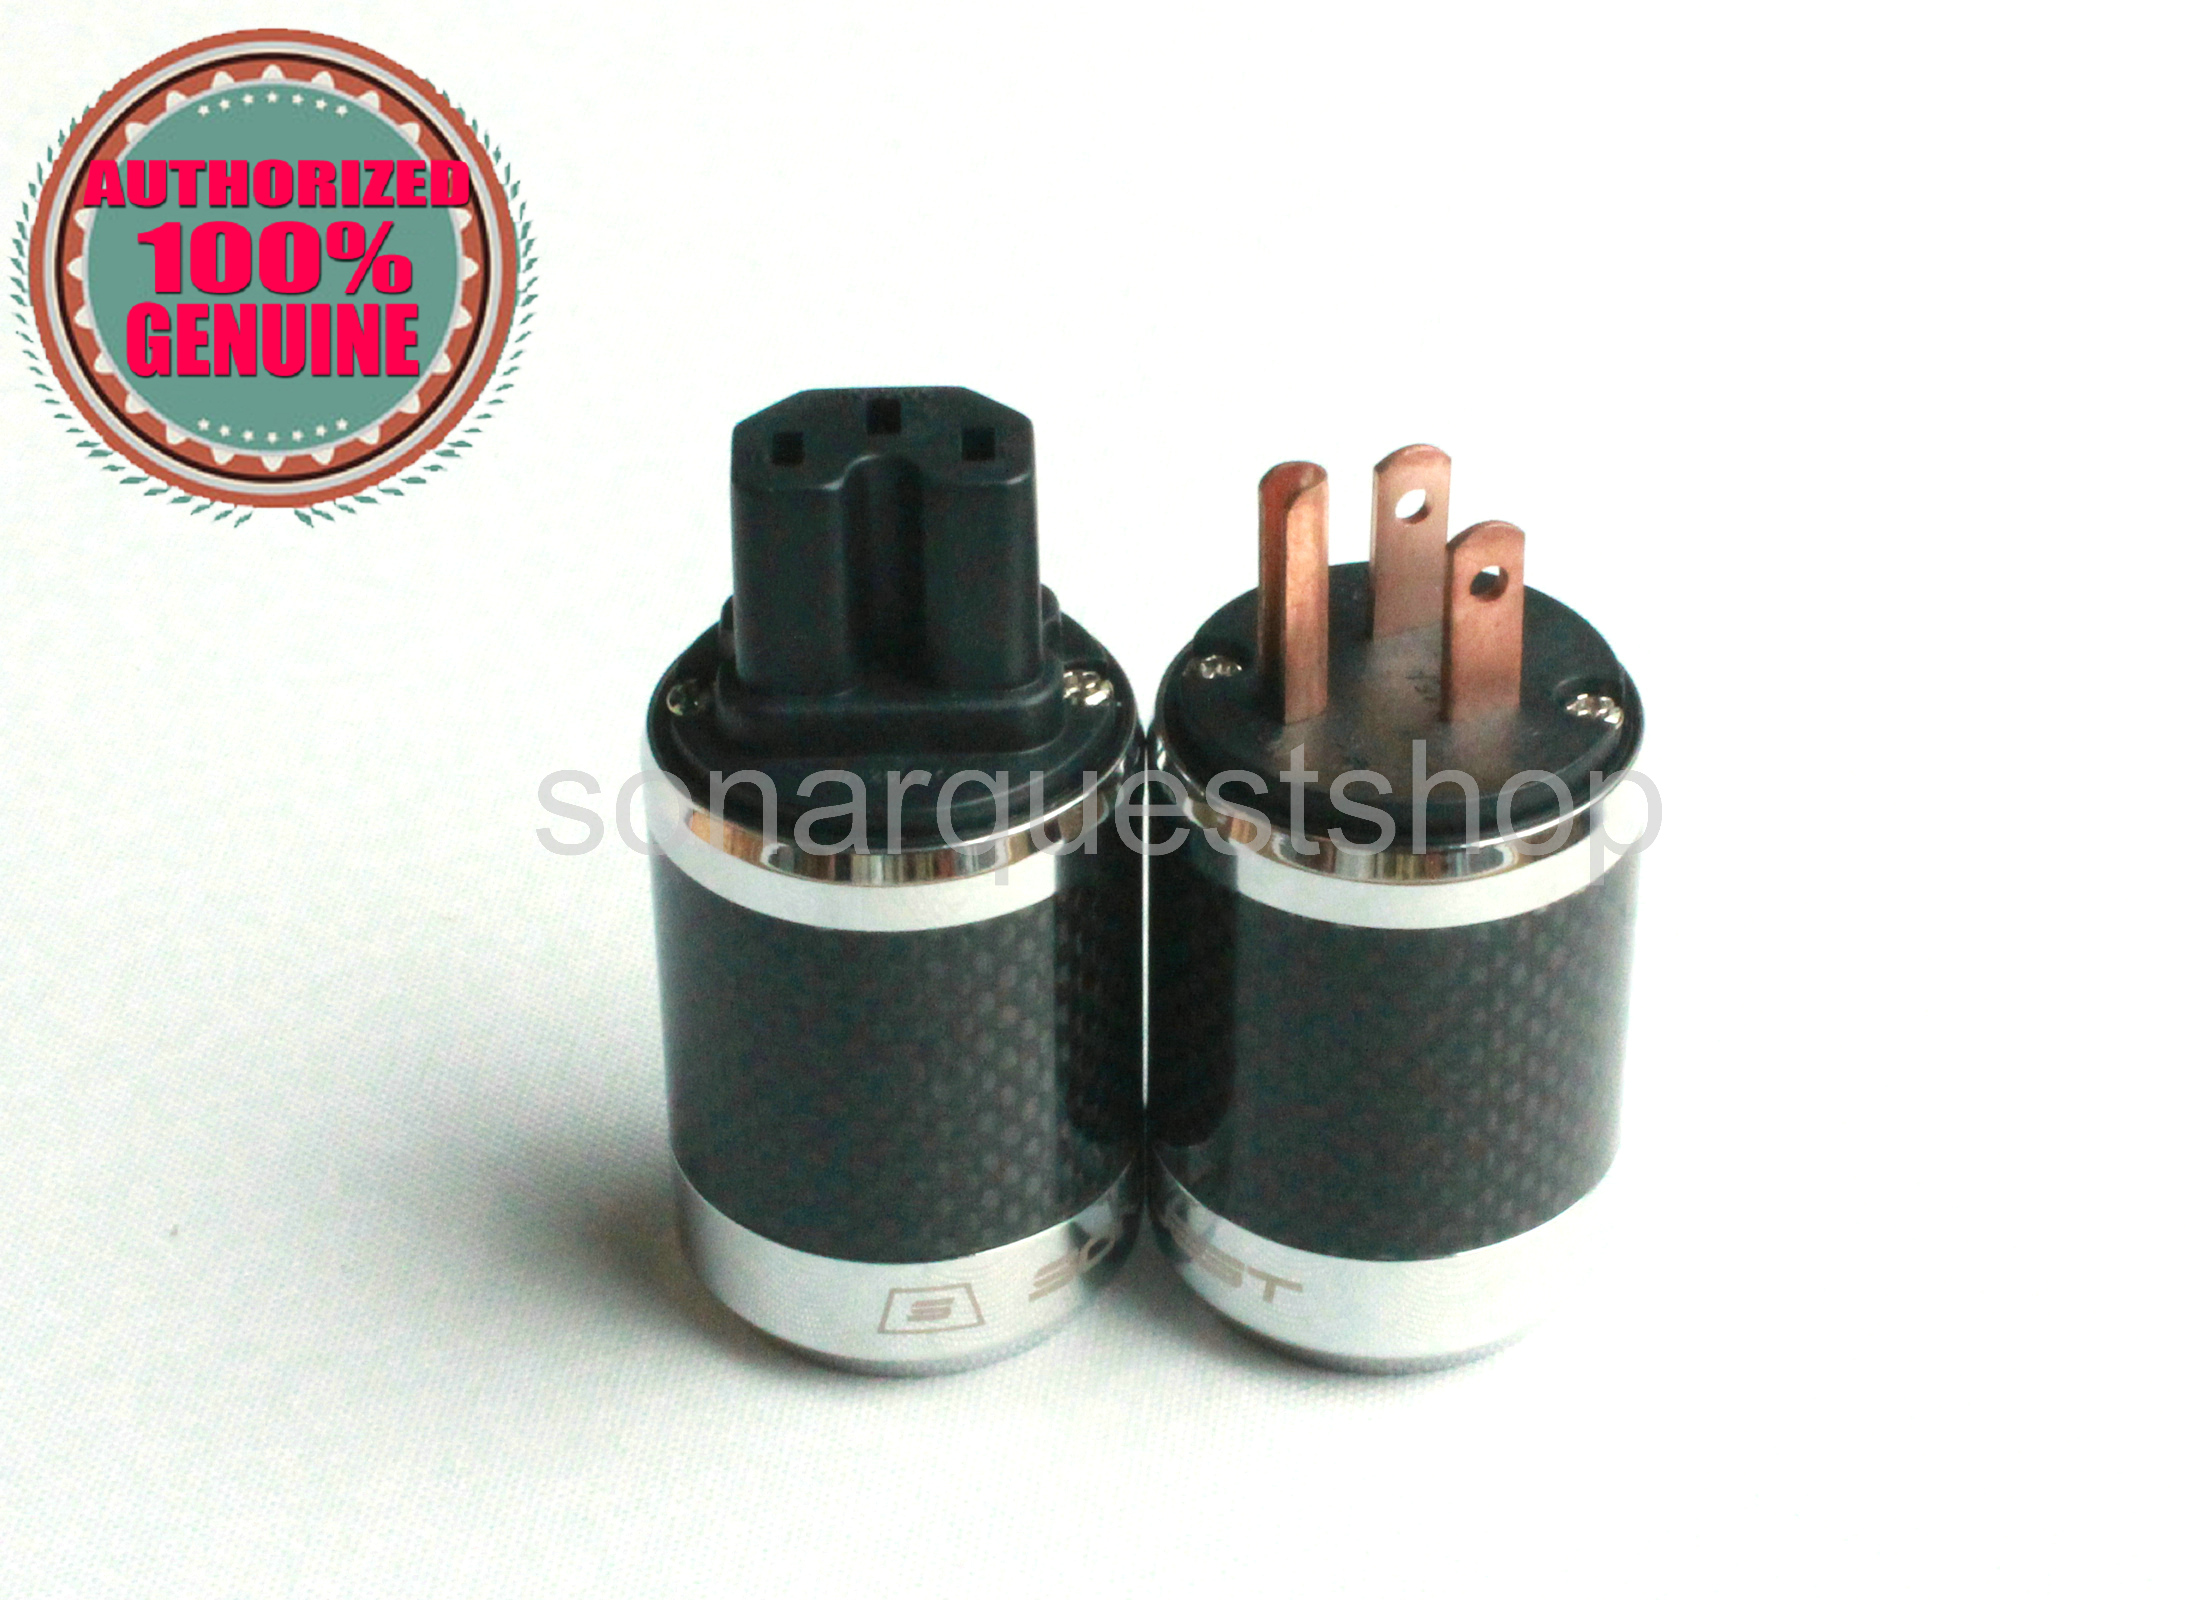 PYK SONARQUEST SQ-P39(C)B + SQ-C39(C)B US Red Copper BK Carbon fiber Power Plug & IEC Connector